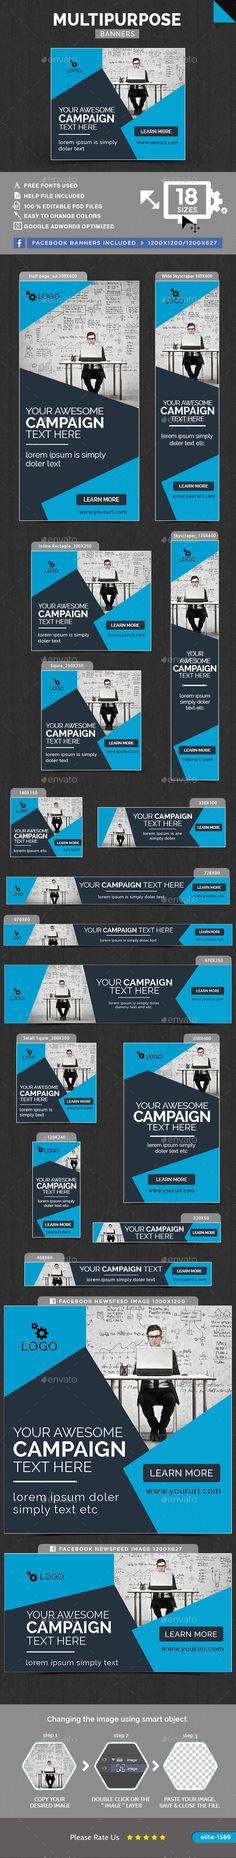 Multipurpose Web Banners Template PSD. Download here: http://graphicriver.net/item/multipurpose-banners/15733161?ref=ksioks